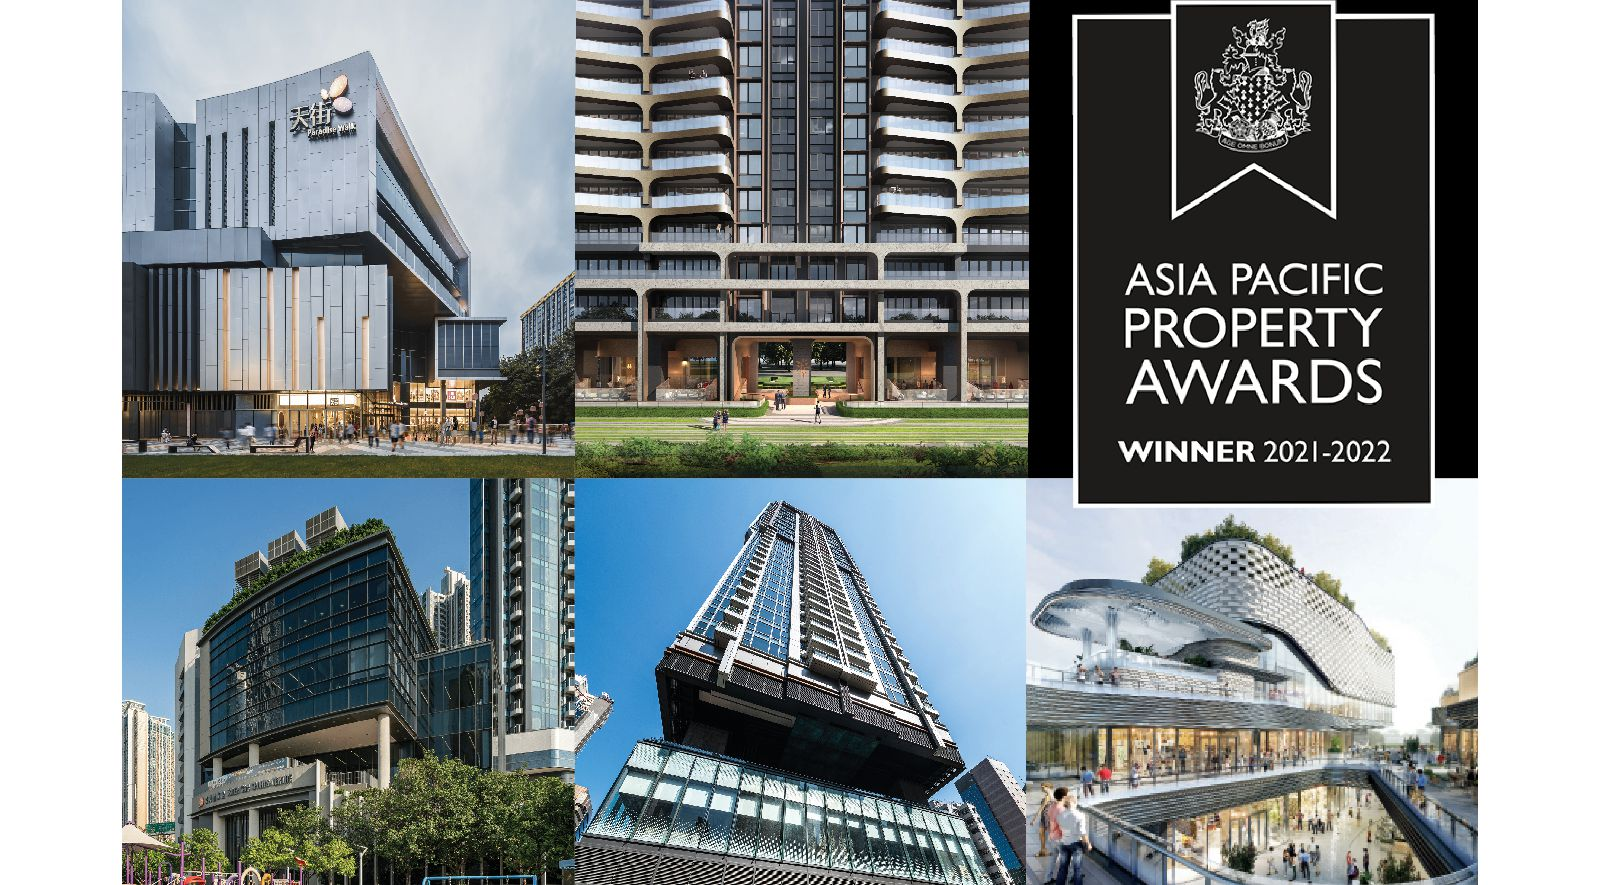 Asia Pacific Property Awards